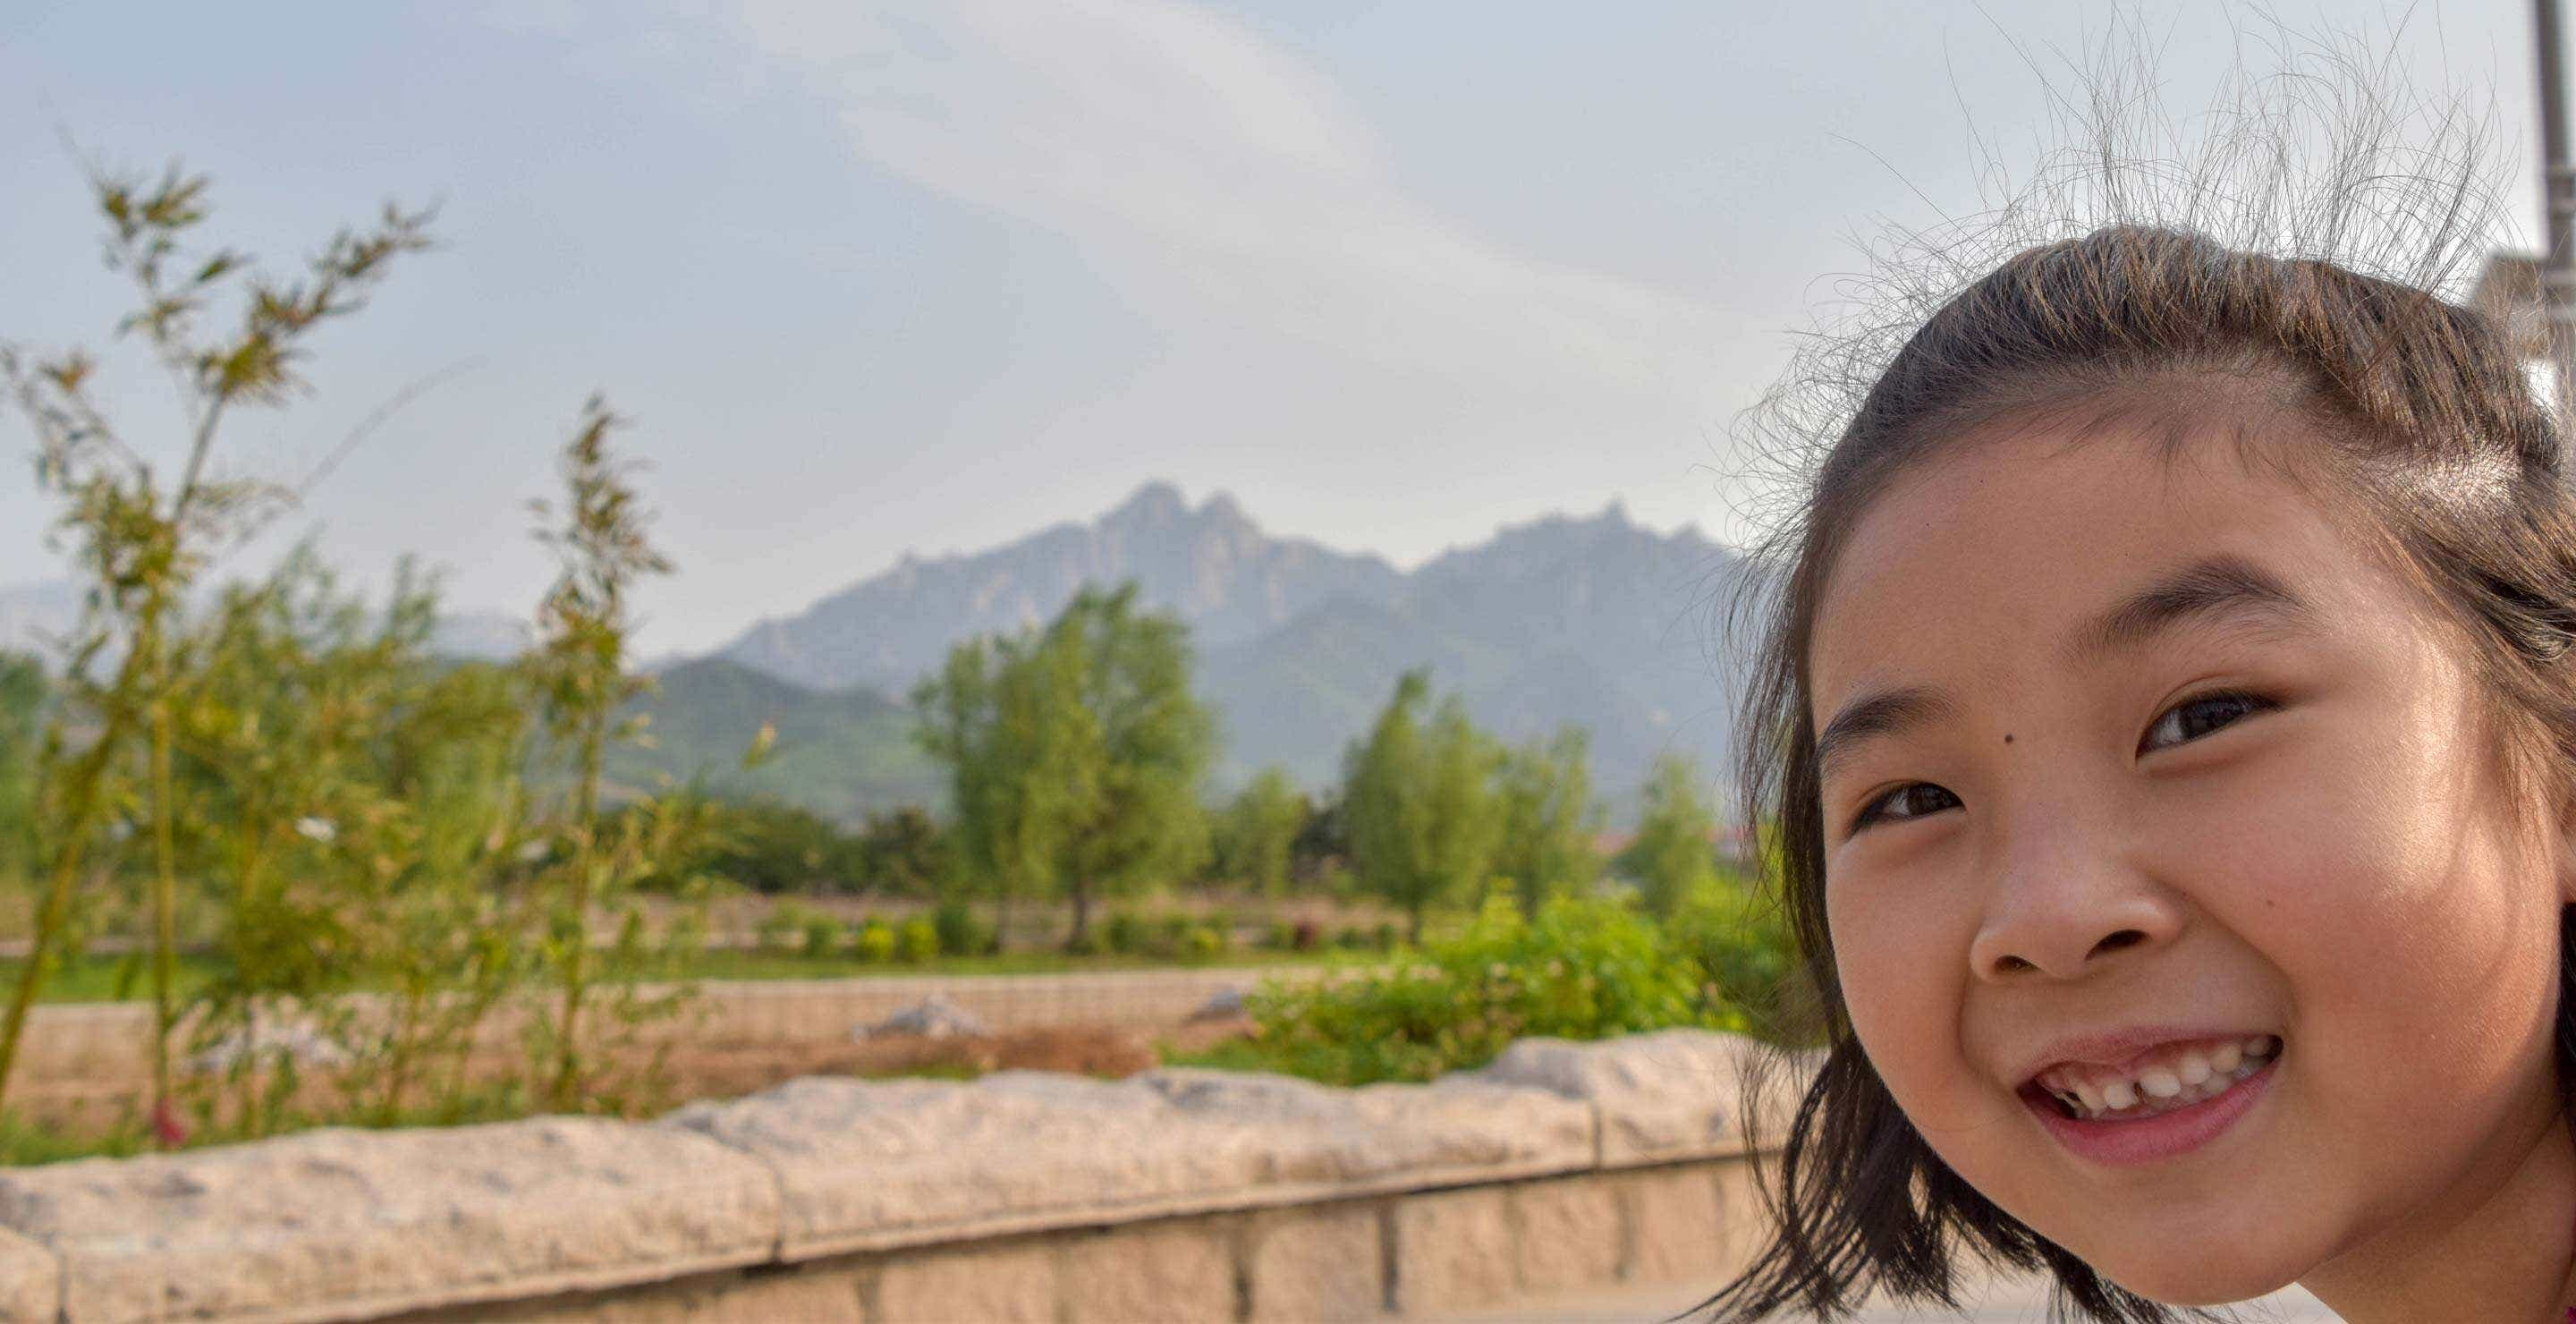 our family lives in Laoshan Village between the beautiful mountains and the ocean